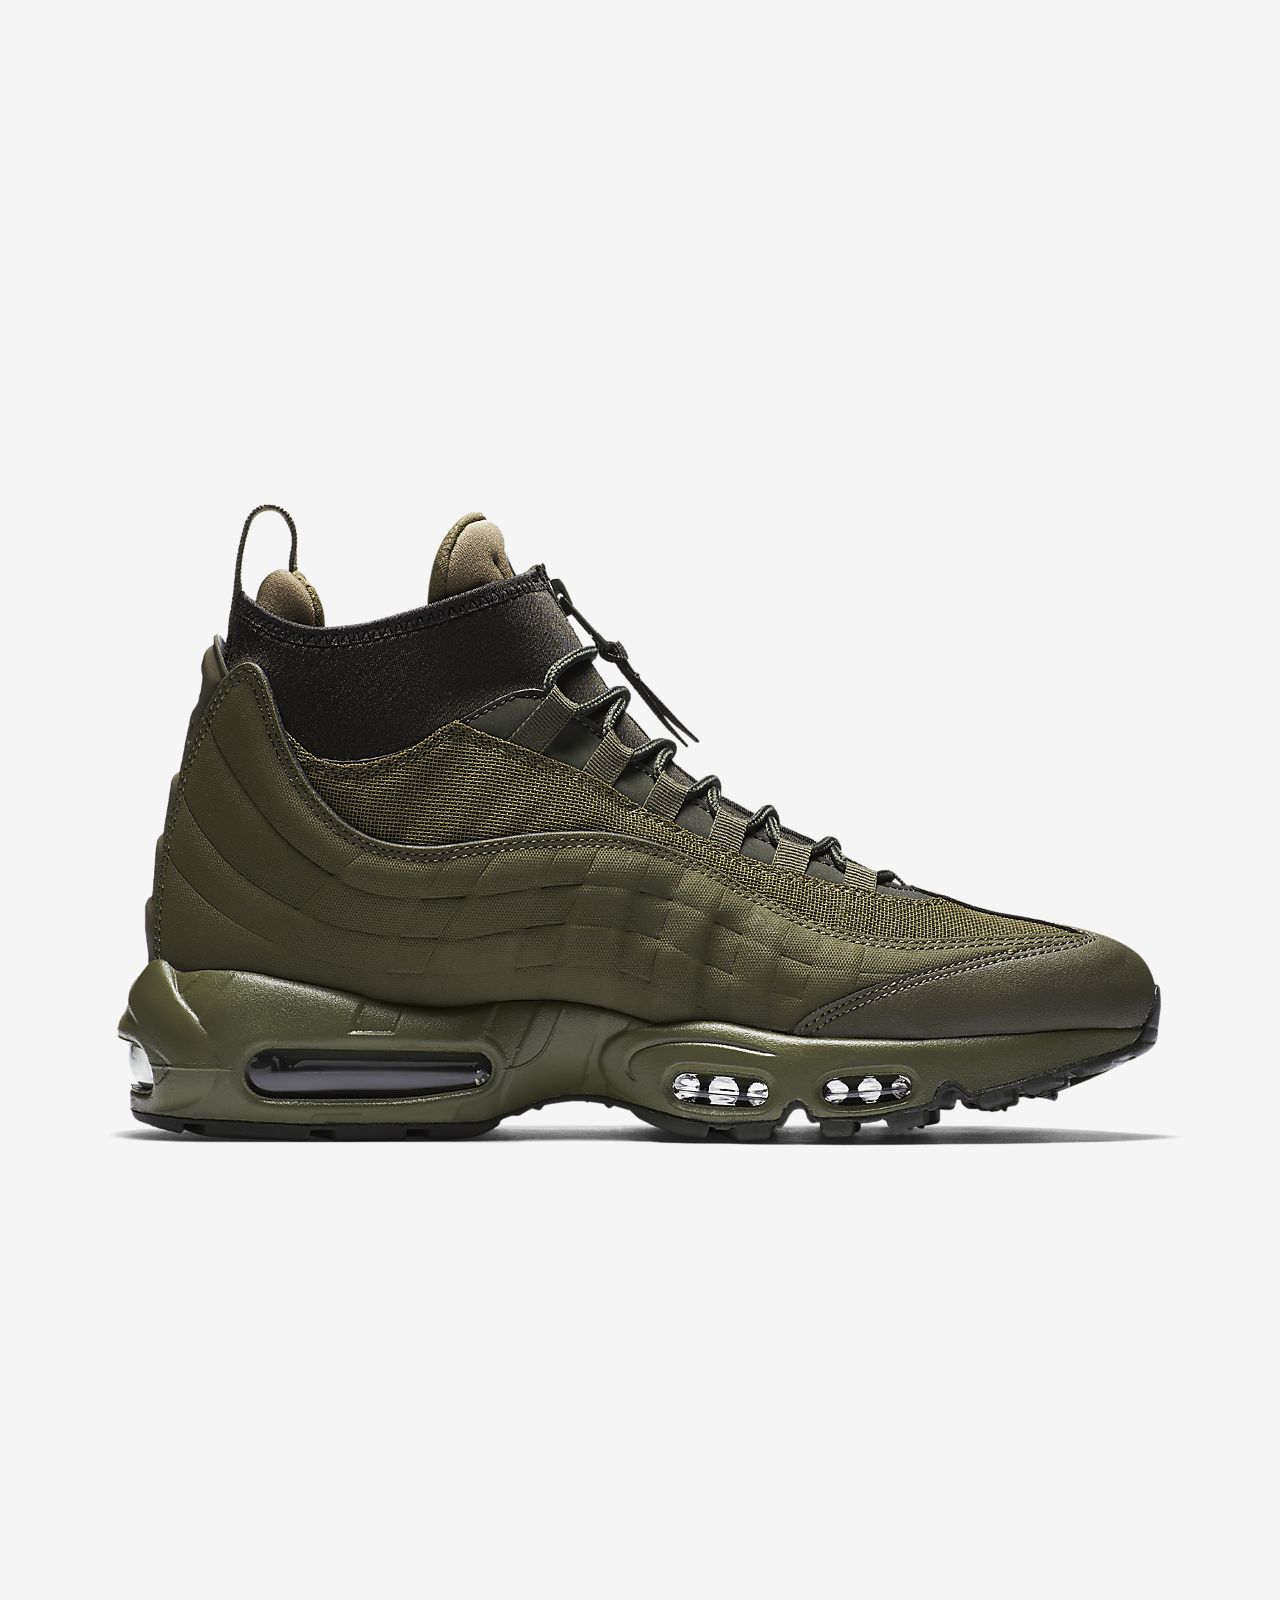 nike air max 1 mid waterproof women's sneakerboot nz